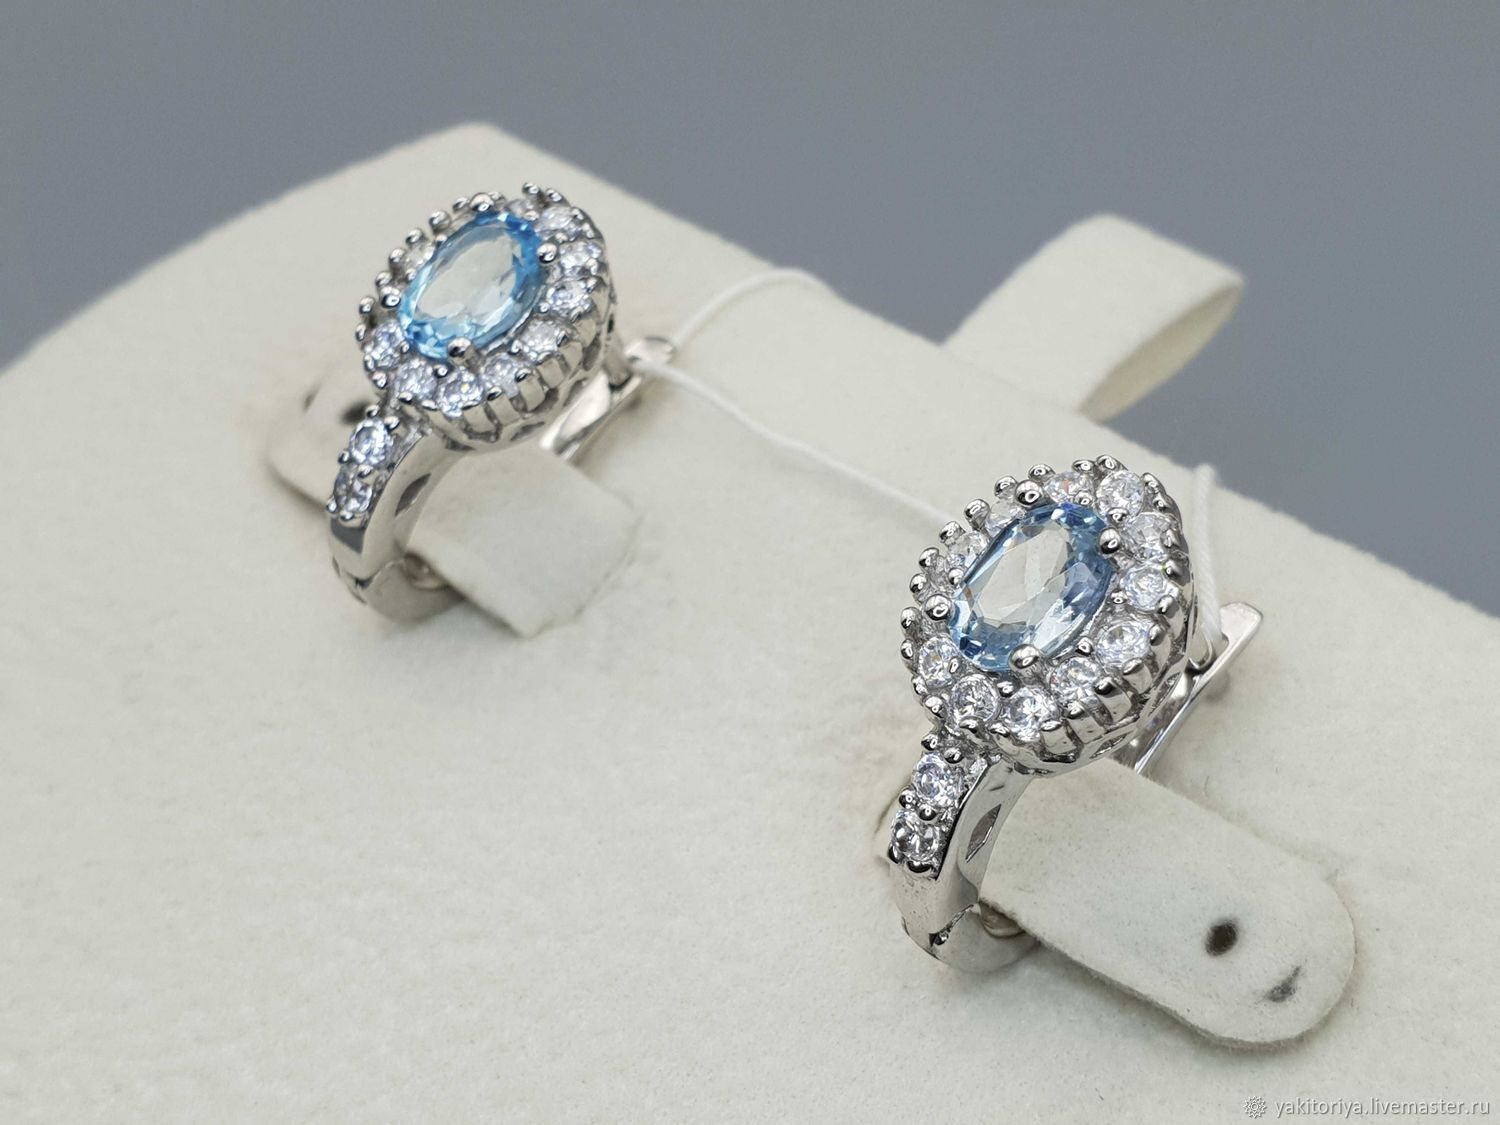 Silver earrings with 7h5 mm topaz and cubic zirconia, Earrings, Moscow,  Фото №1